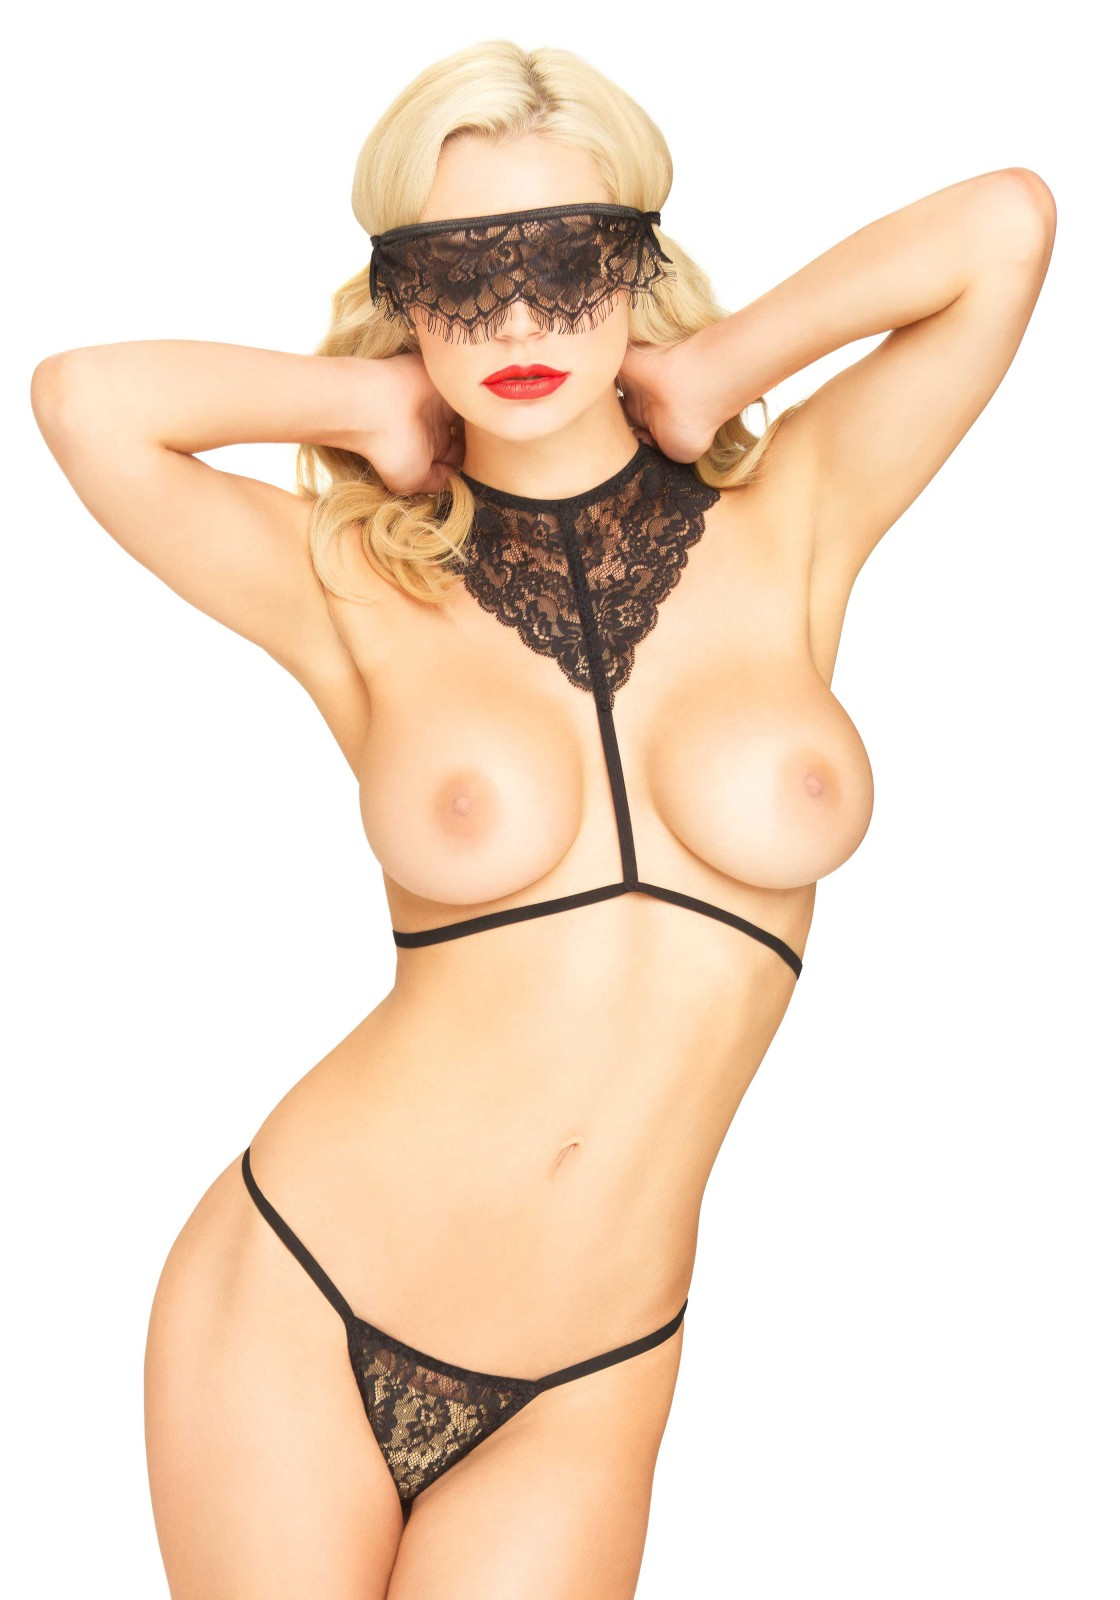 3 PC. Scandal Set, includes scalloped lace body harness, matching g-string and eyelash lace eye mask. Nipple covers not included.